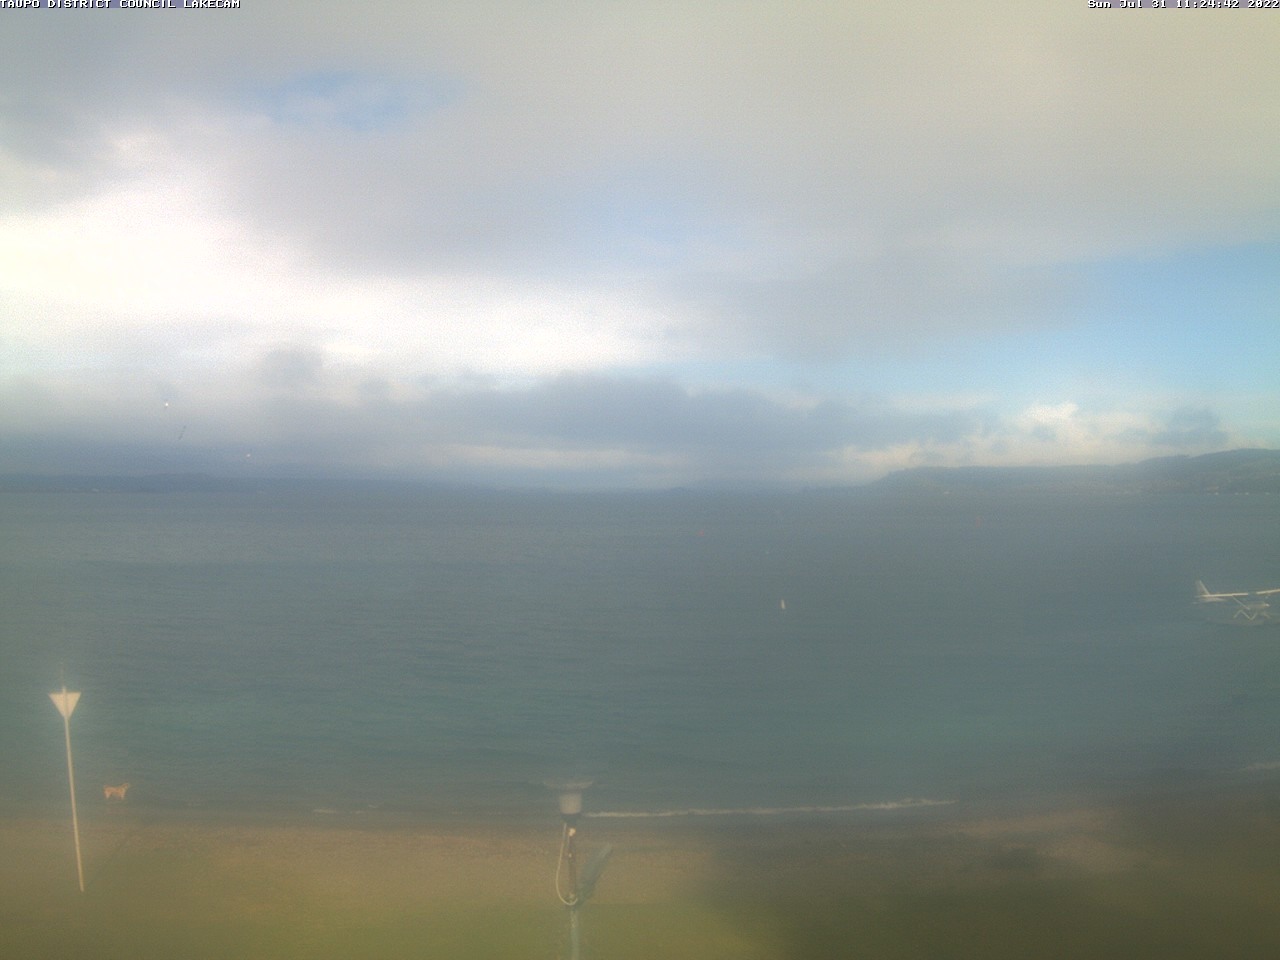 Lake Taupo Yacht Club webcam